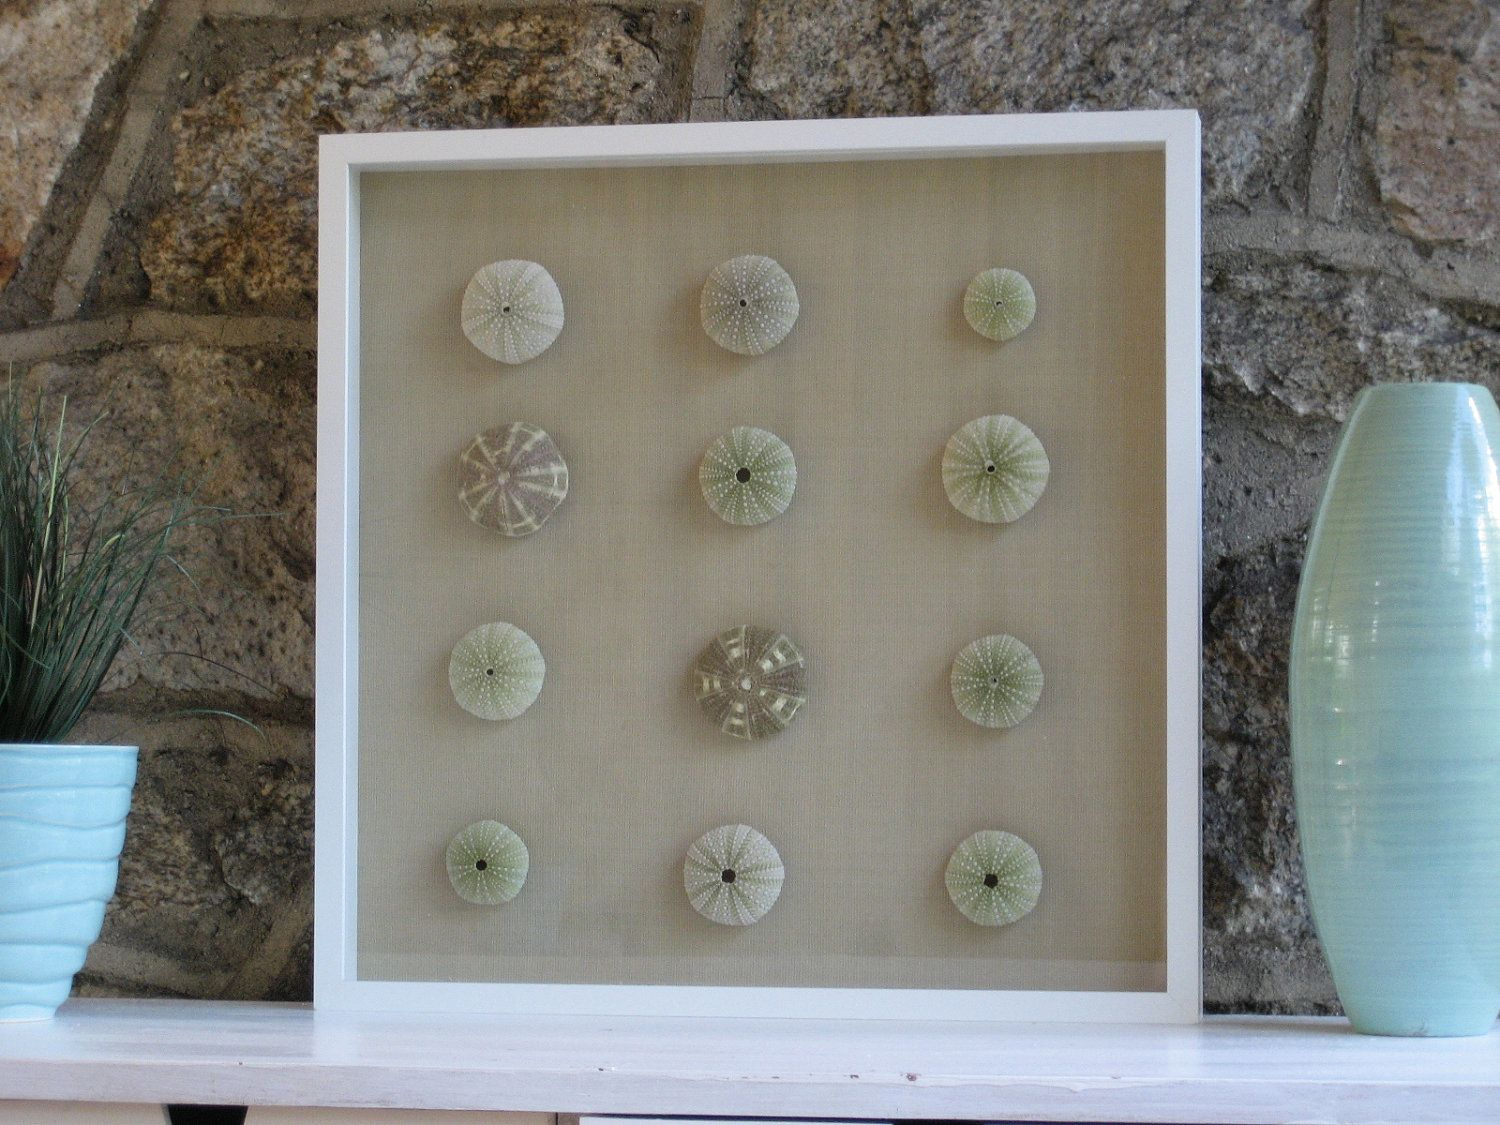 Sea Urchins - Natural Sea Urchins Framed in Large Shadow Box ...